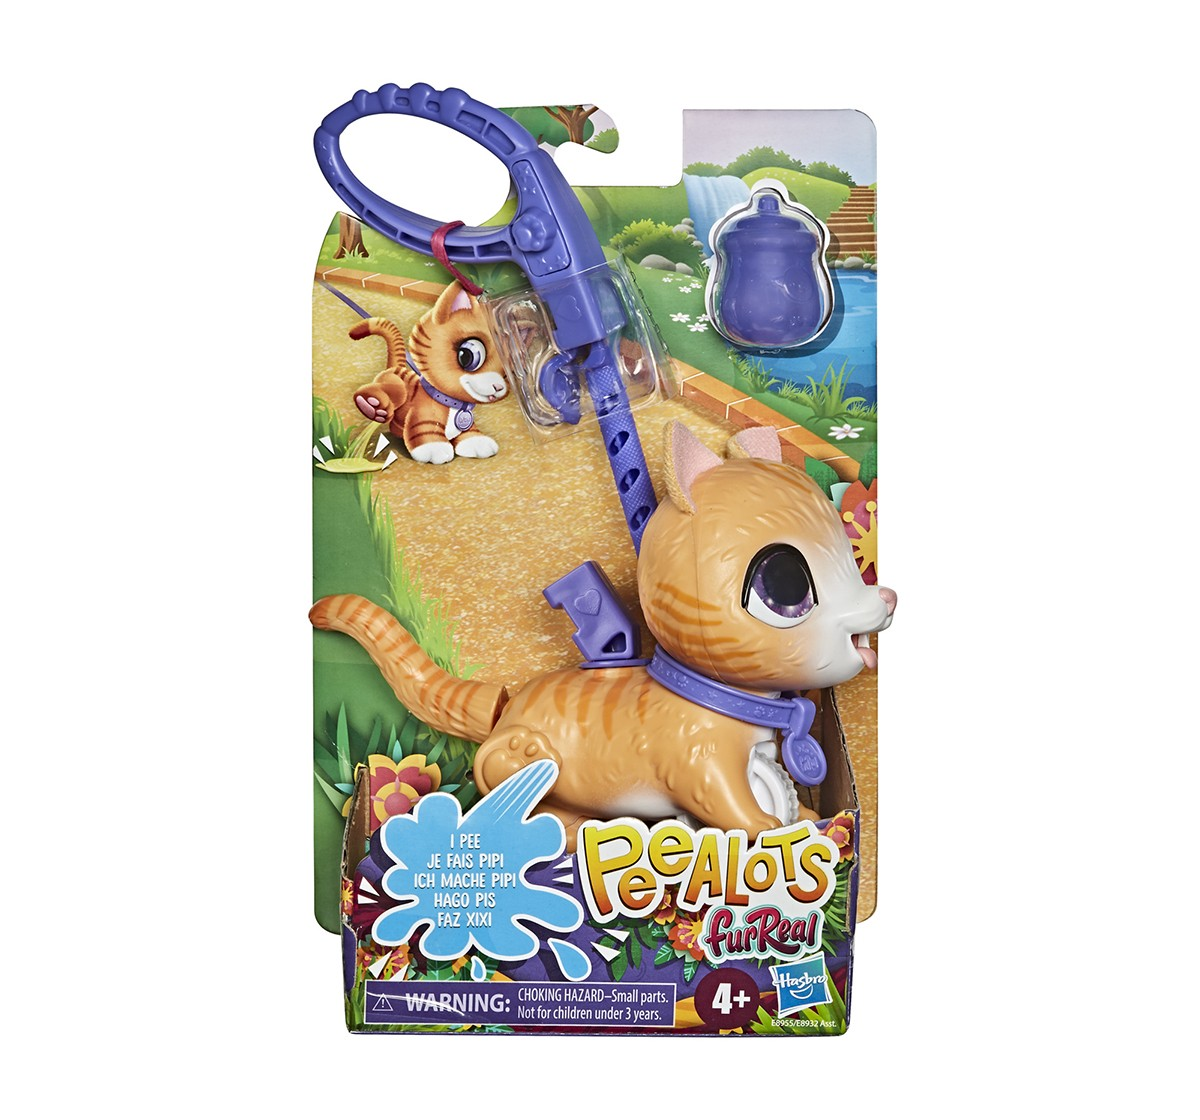 Furreal Friends Peealots Lil' Wags Tabby Interactive Pet Toy, Ages 4 and Up  Interactive Soft Toys for GIRLS age 4Y+ - 21 Cm